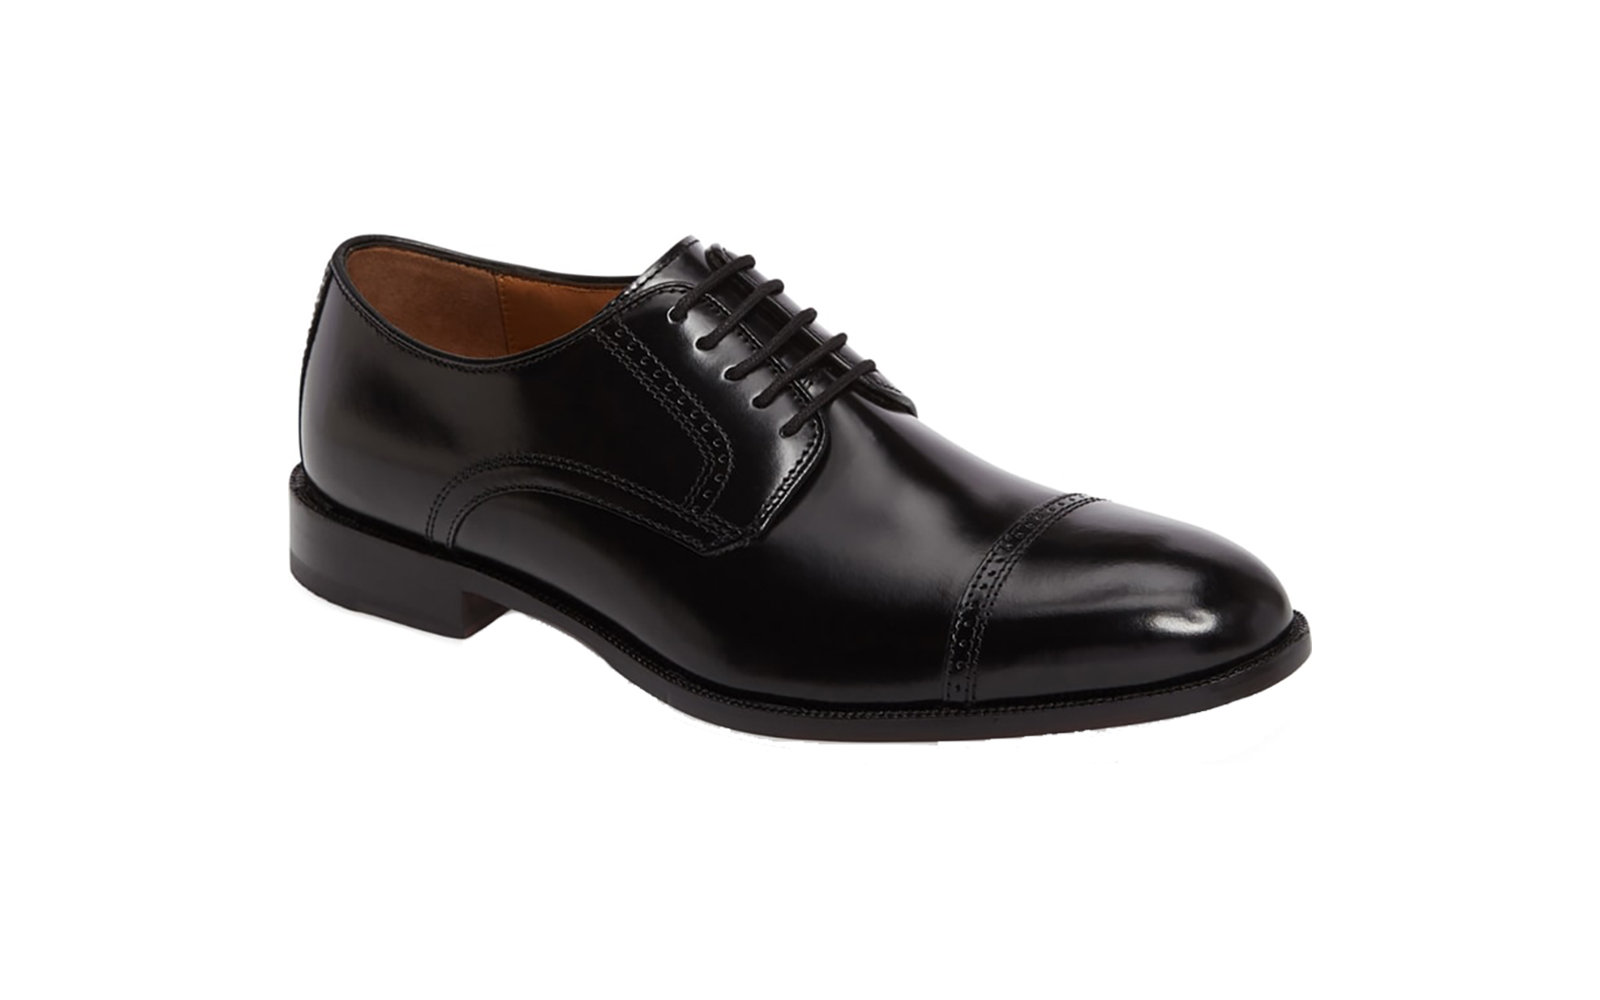 c920bb731087 The 12 Most Comfortable Dress Shoes for Men